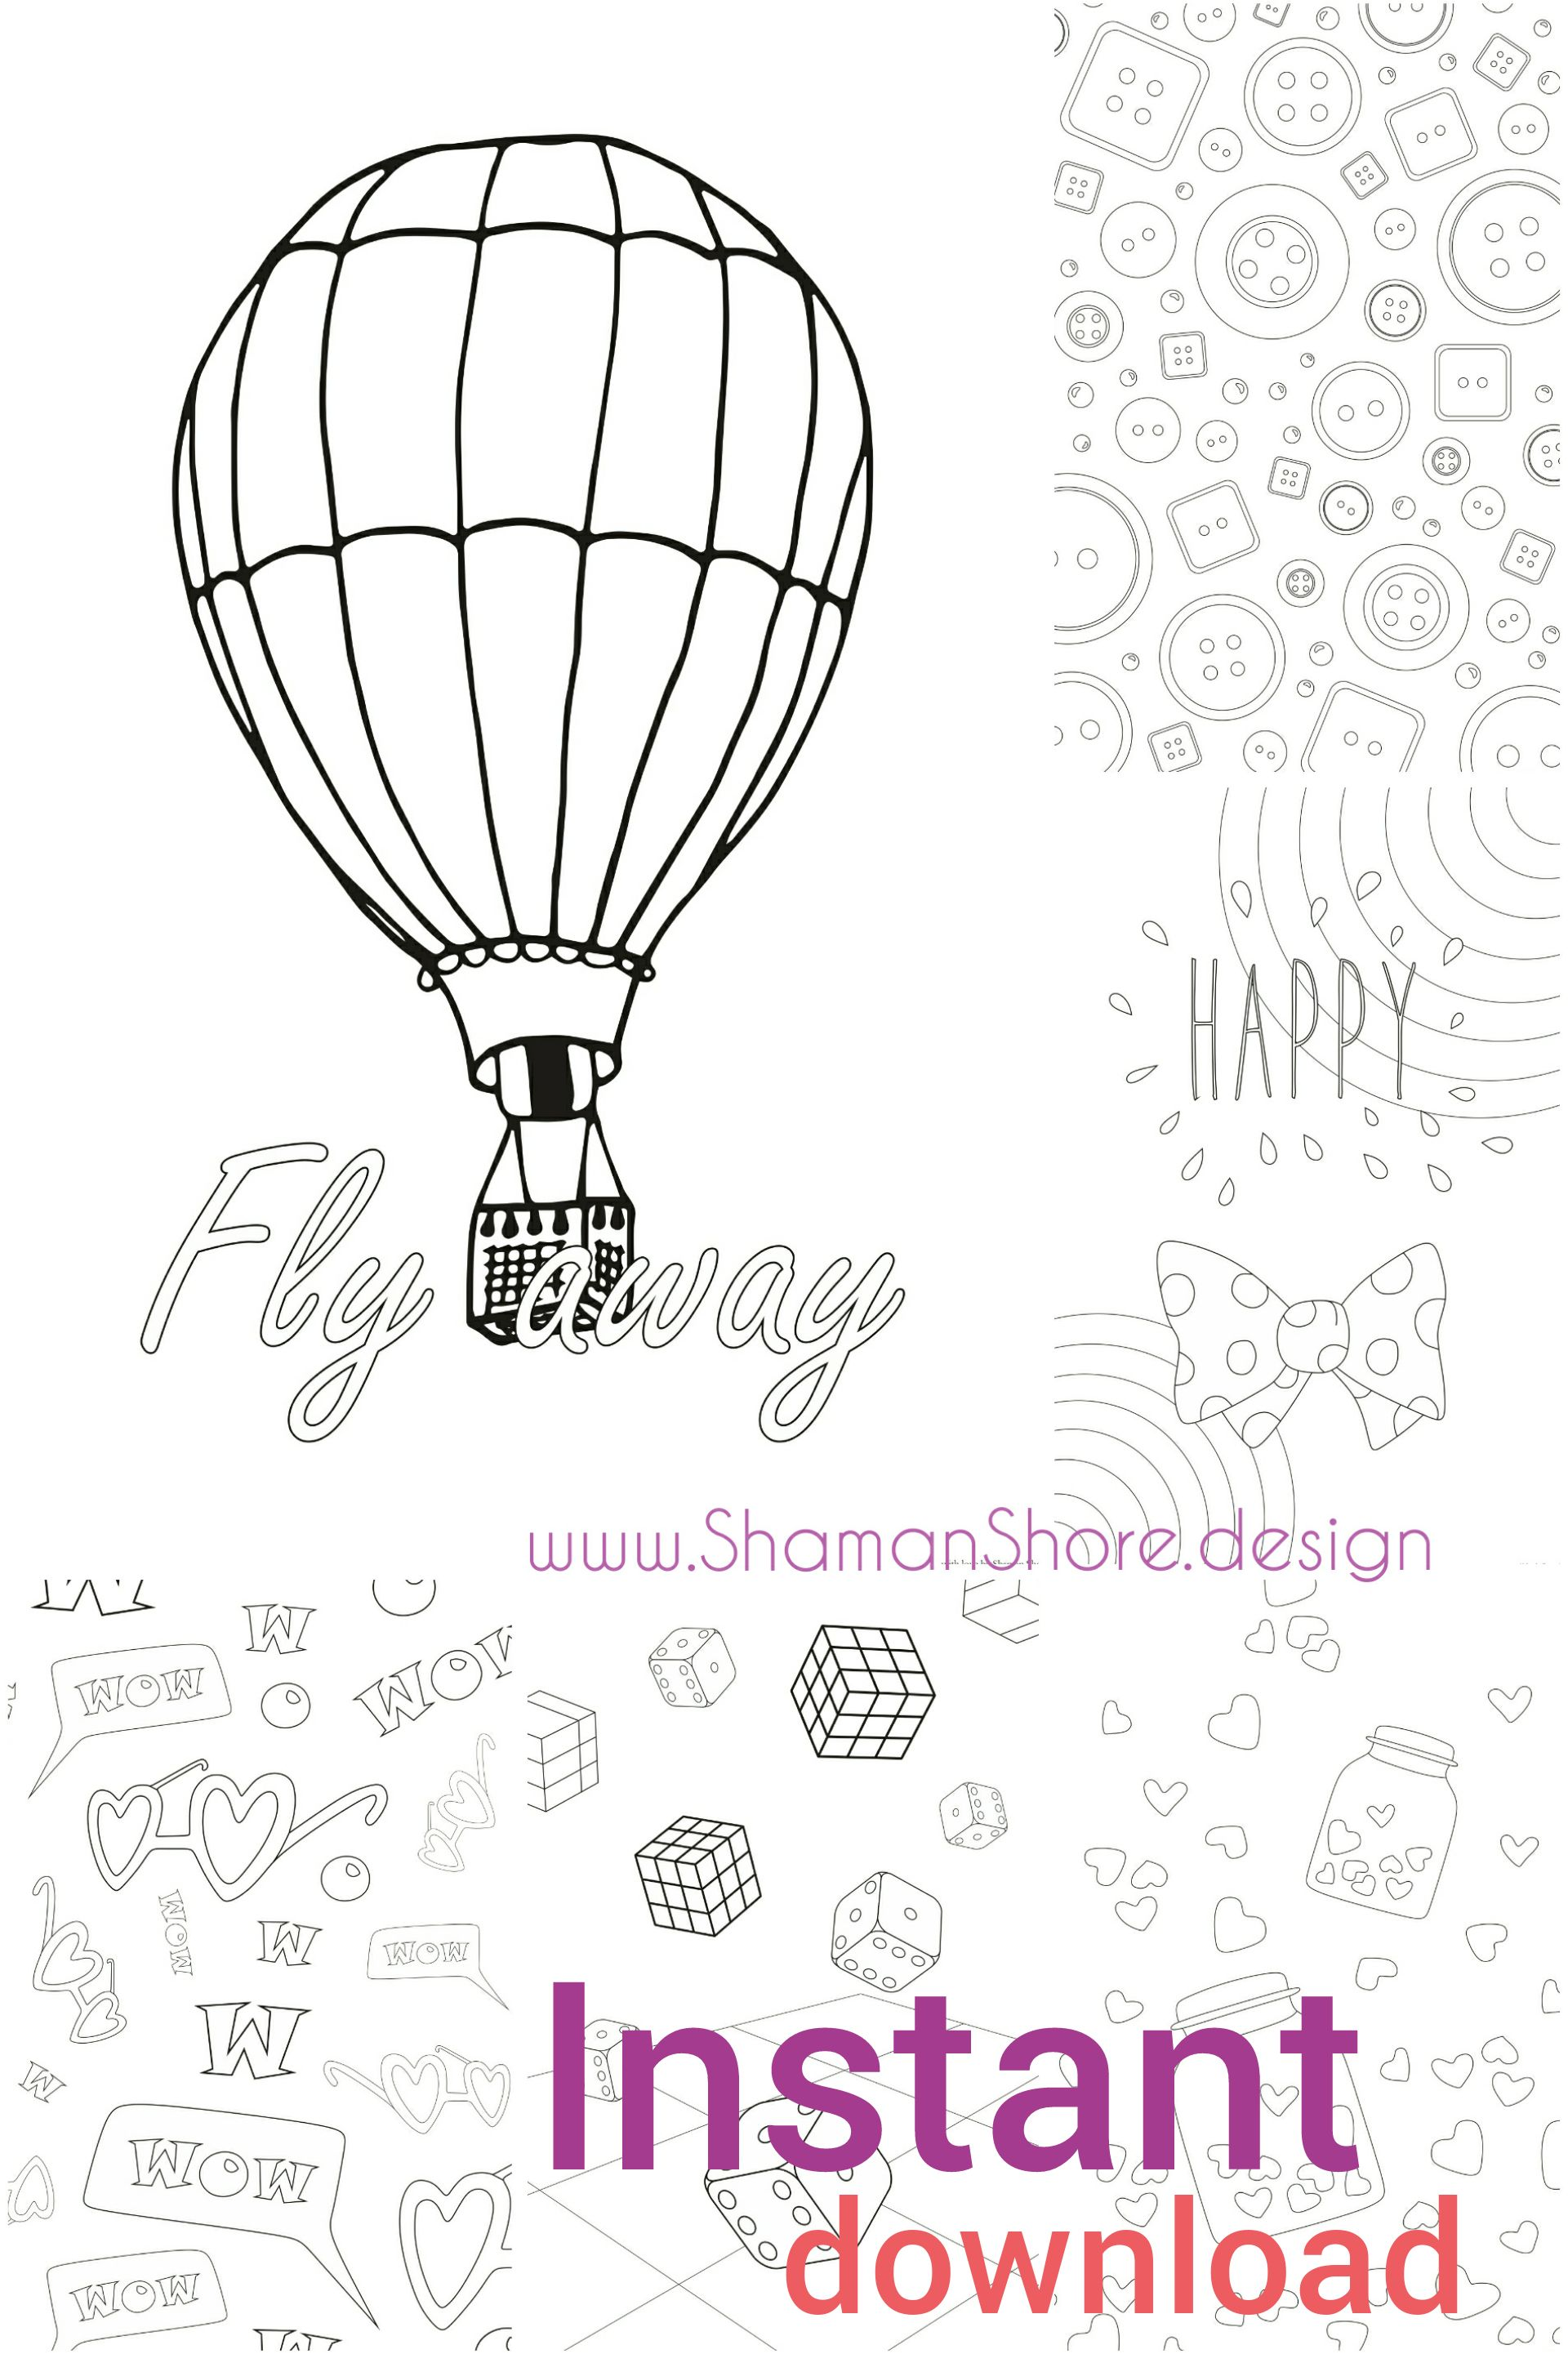 Digital Coloring Book Pdf Printable Coloring Pages Download Etsy In 2020 Coloring Pages Coloring Books Cool Coloring Pages